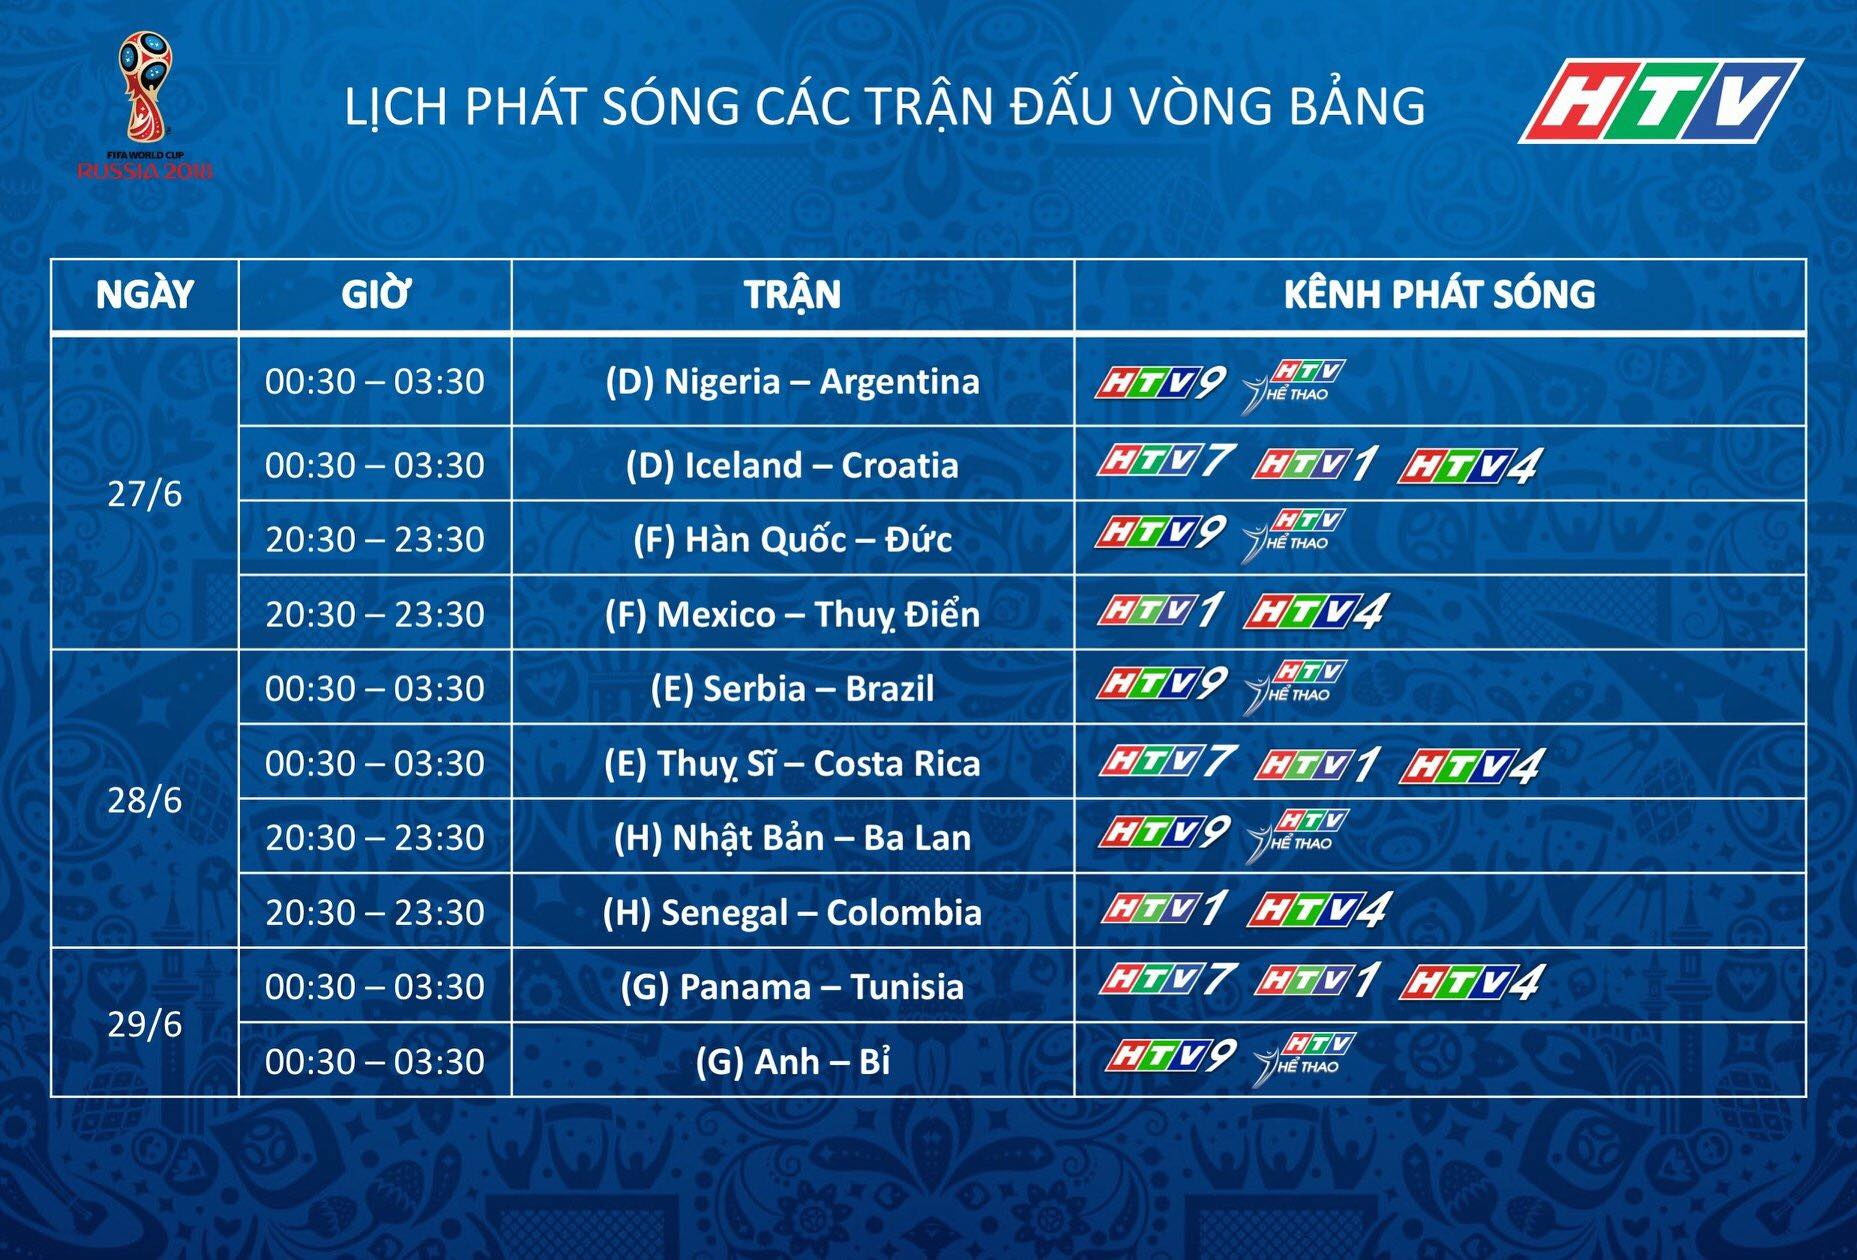 LICH PHAT SONG WORLD CUP 2018 TREN HTV 4